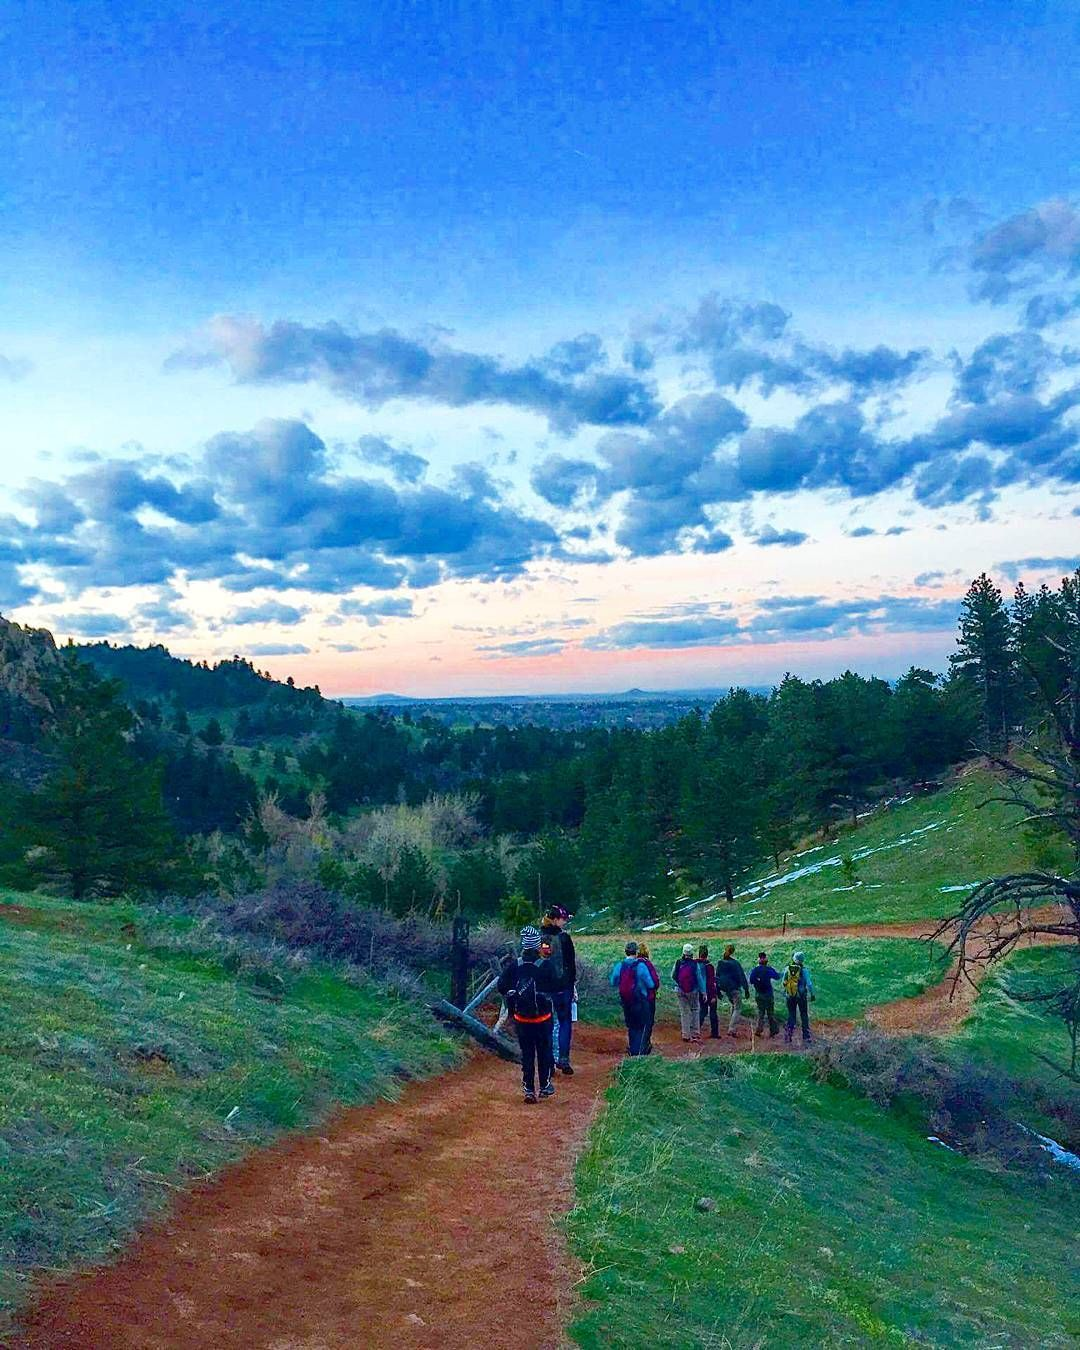 Sunset hike at #Boulder's Anemone Trail. Hiking isn't necessarily just a day time activity.  With a Winter Storm Warning looming over Colorado I'm ready for summer and clear trails no traction or snow shoes and packing my thickest coats away for another season.  #bouldercolorado #bouldergov #colorado #visitcolorado #coloradolive #cometolife #hiking #patikointi #vaellus #outdoors #nature #luonto #retkeily #retki #travel #matka #reissu #IGtravelthursday #passionpassport #adventure #wanderlust…